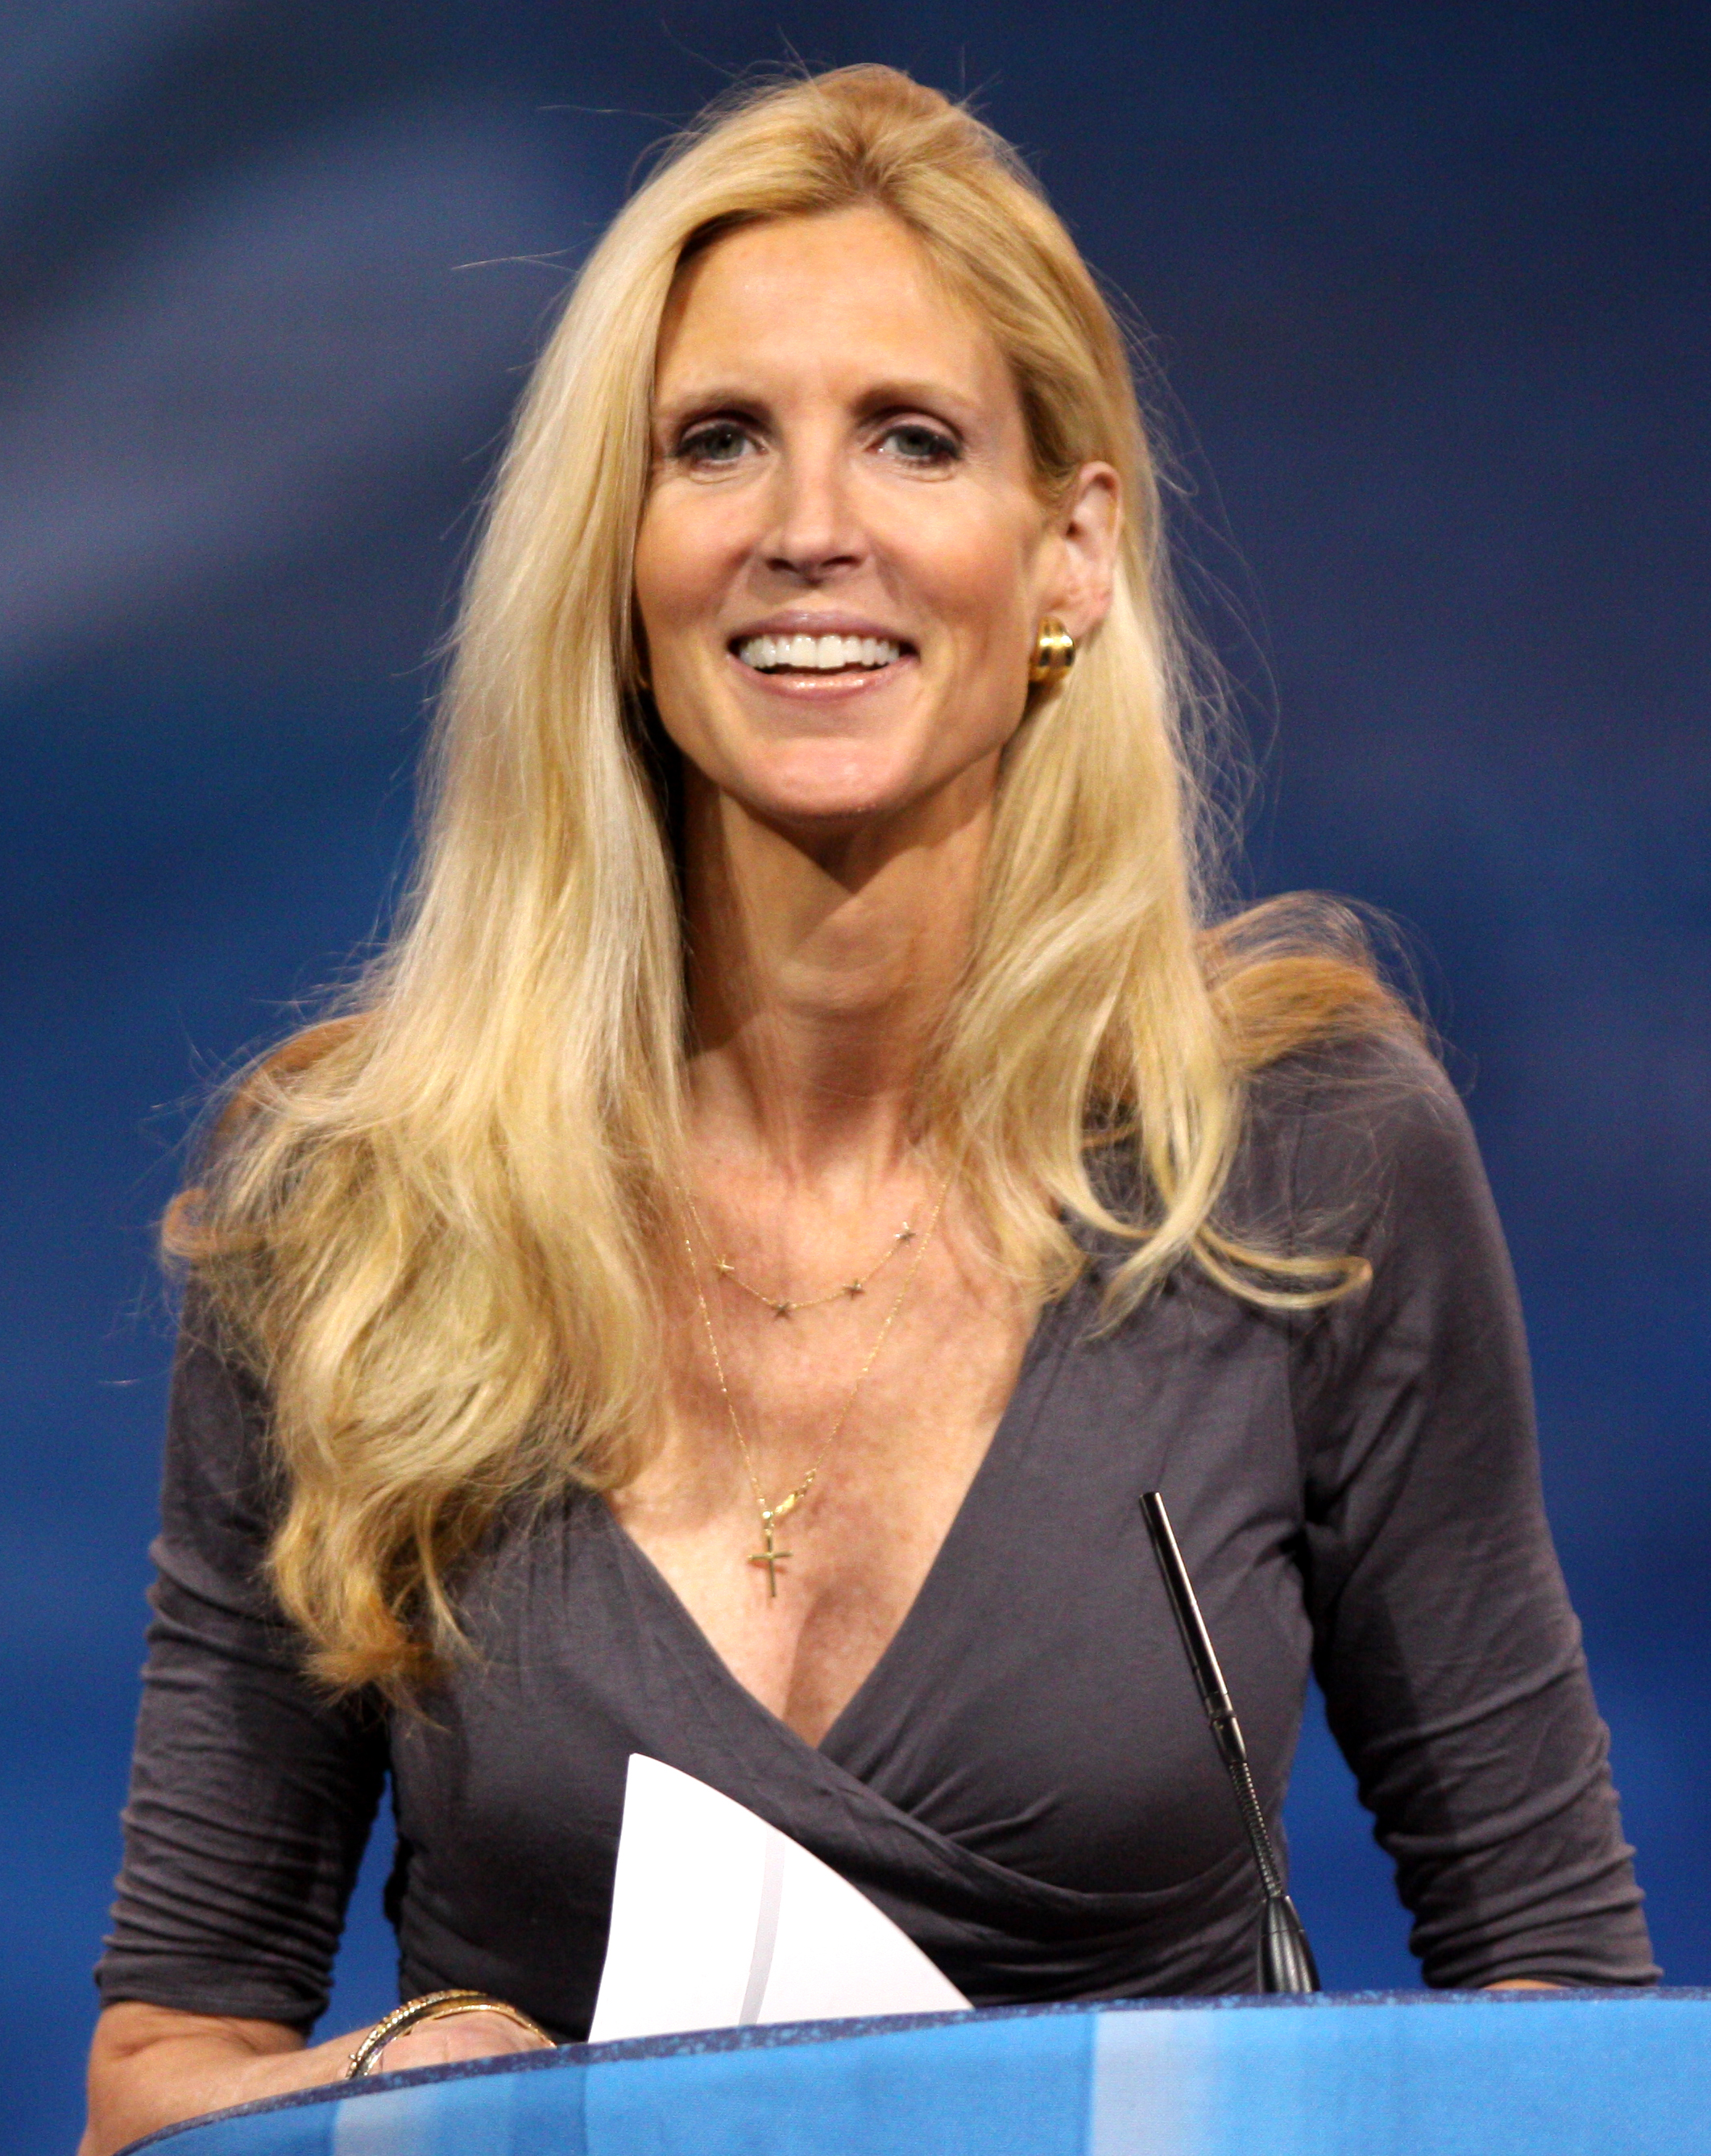 Ann Coulter - Wikipedia, the free encyclopedia